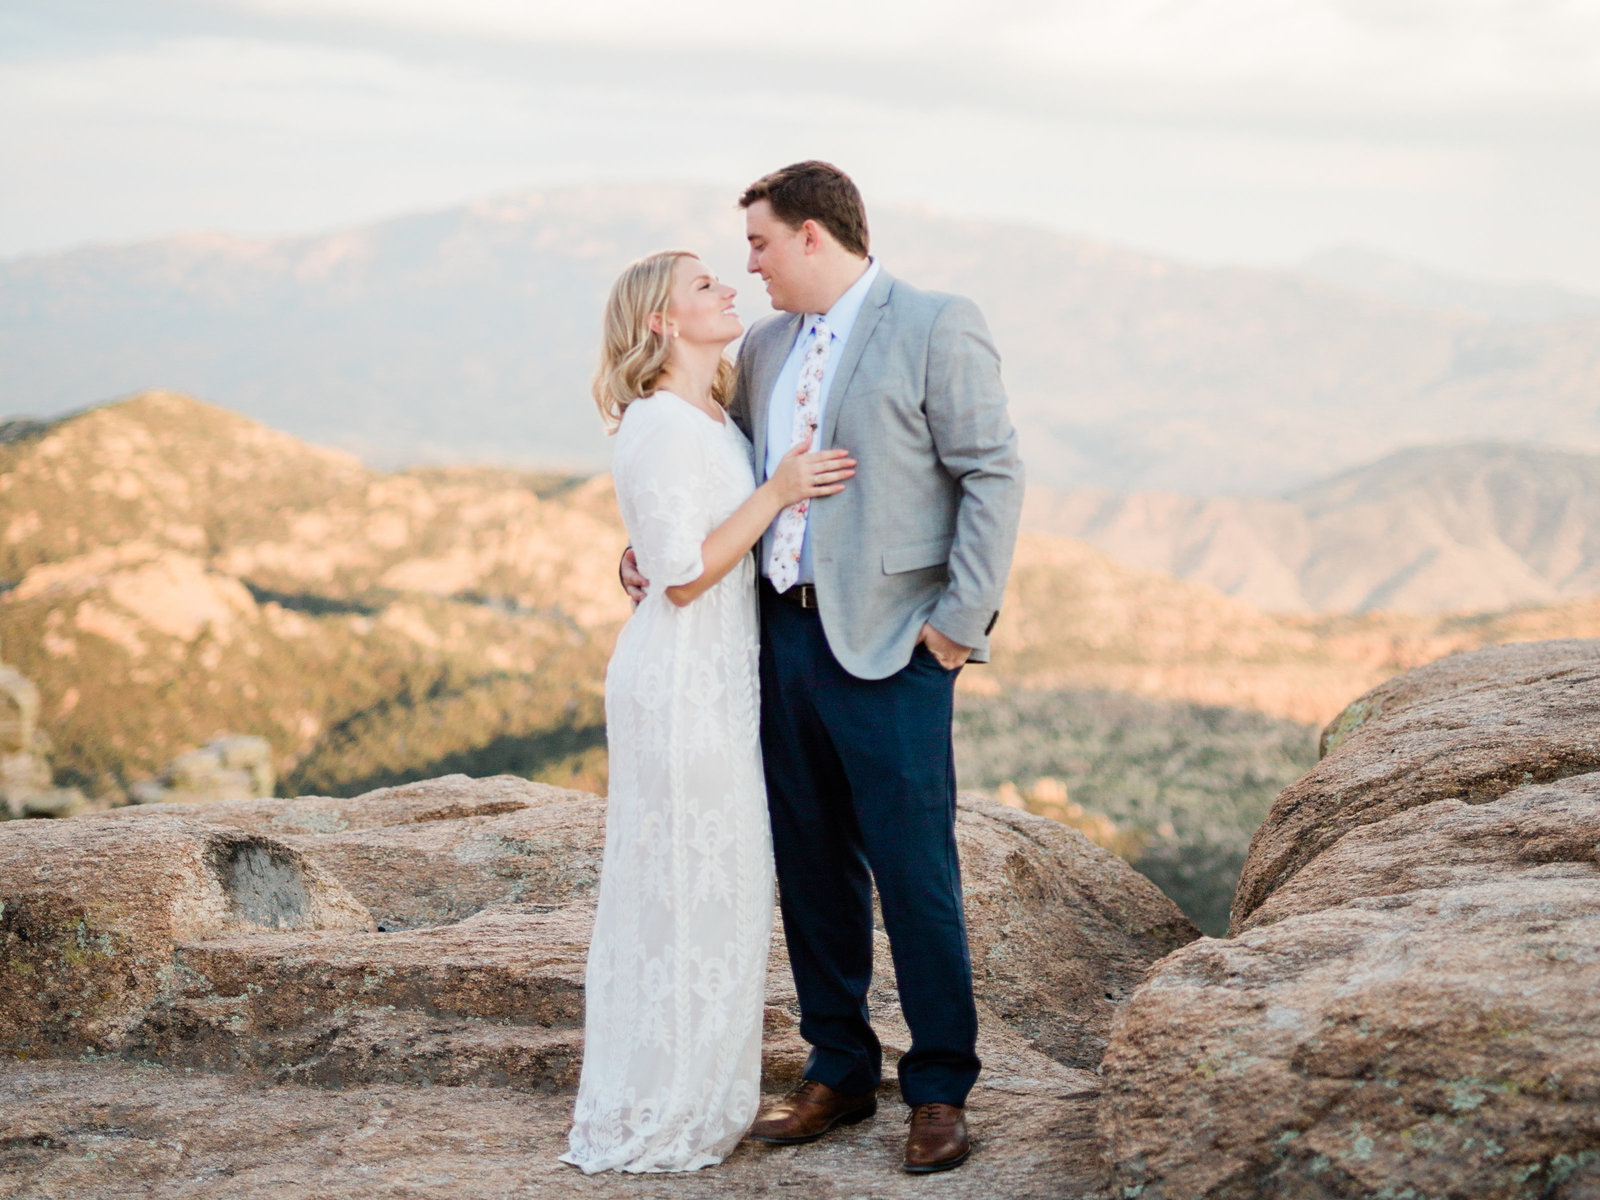 Emily&Carter-Engagement-4400